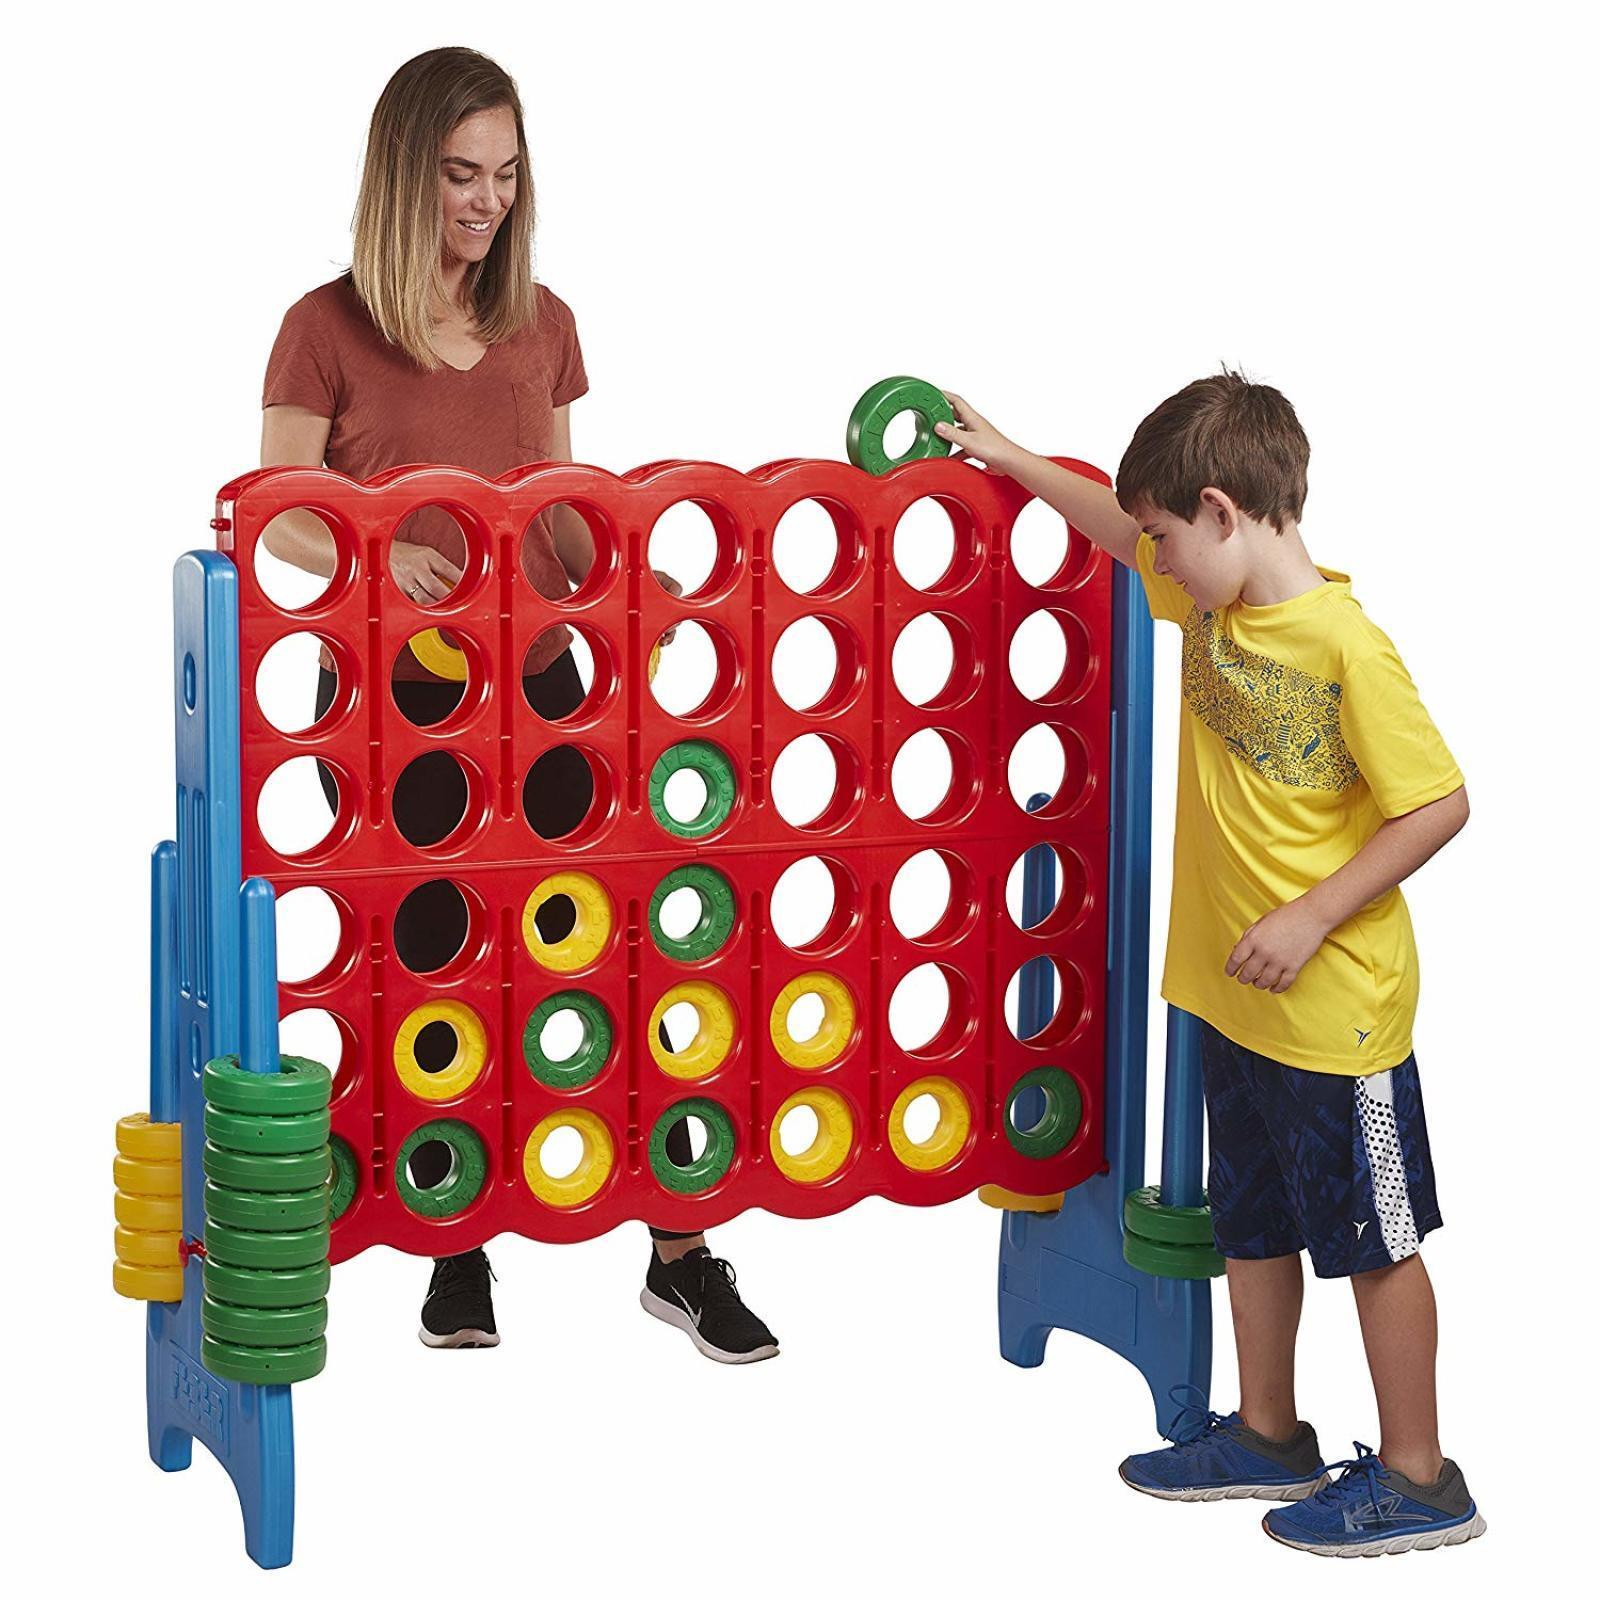 Score Game Set  Giant Größed Family Game Connect 4 Design Game Room Decor Toy Set